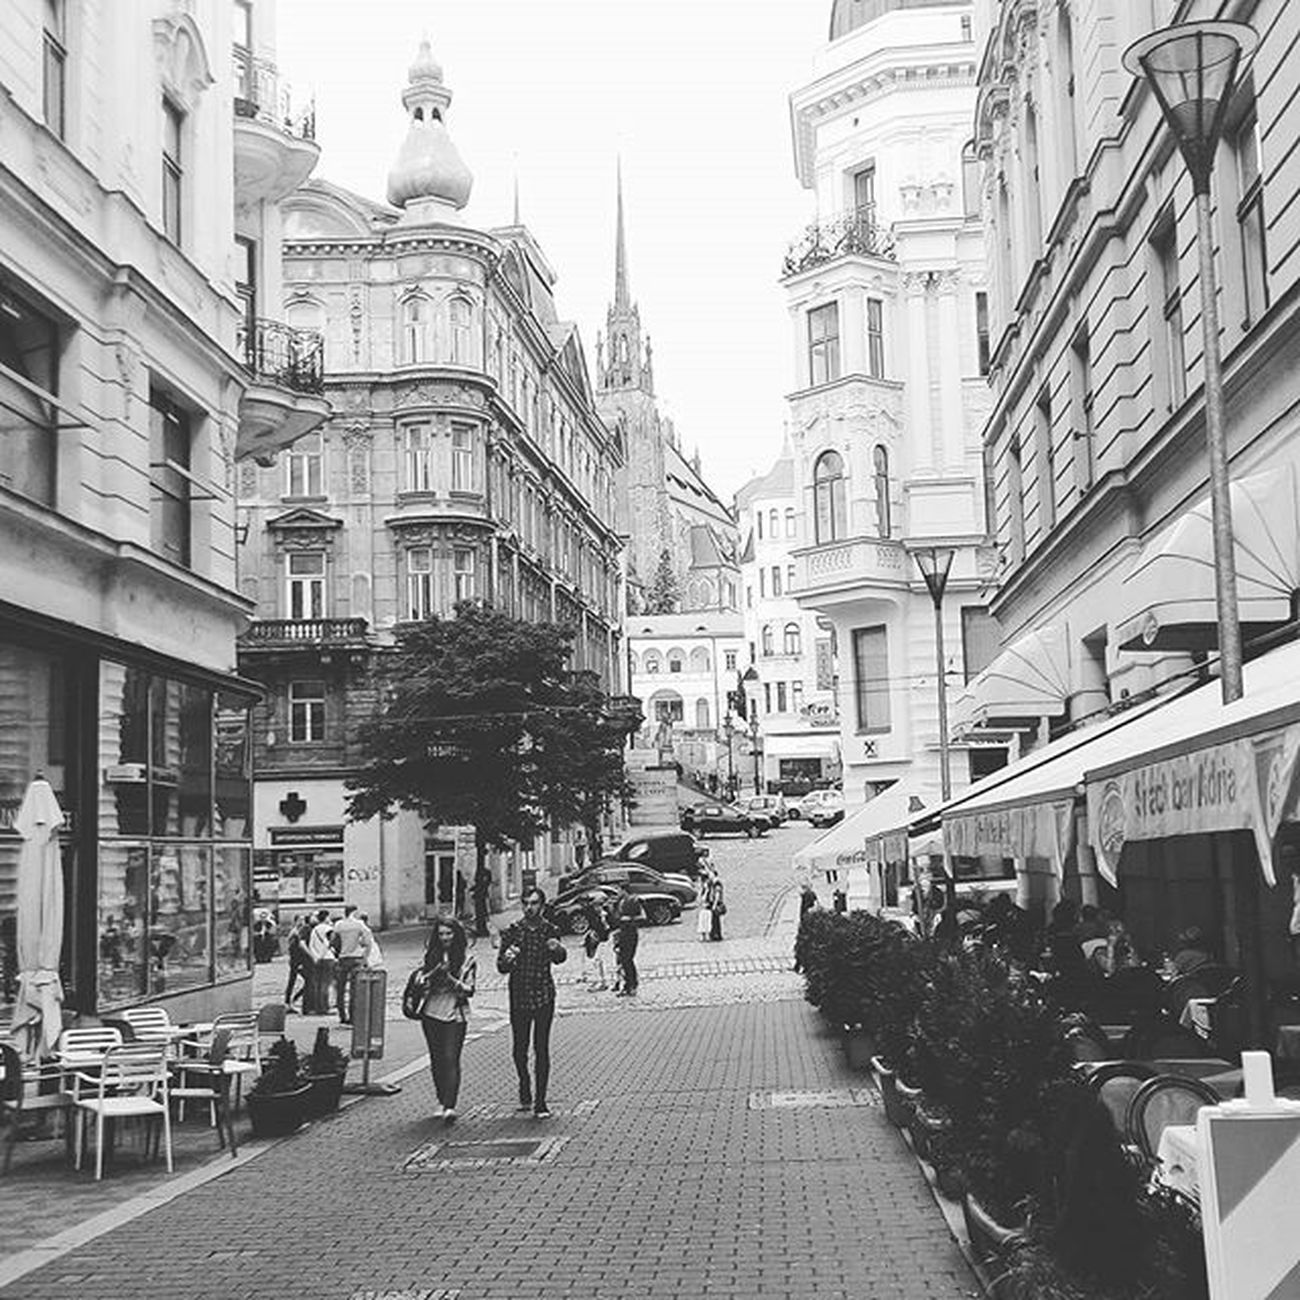 Brno Takie Piekne Romantic Blackandwhite Street Czechrepublic Walking Vintage Art Church People L4l